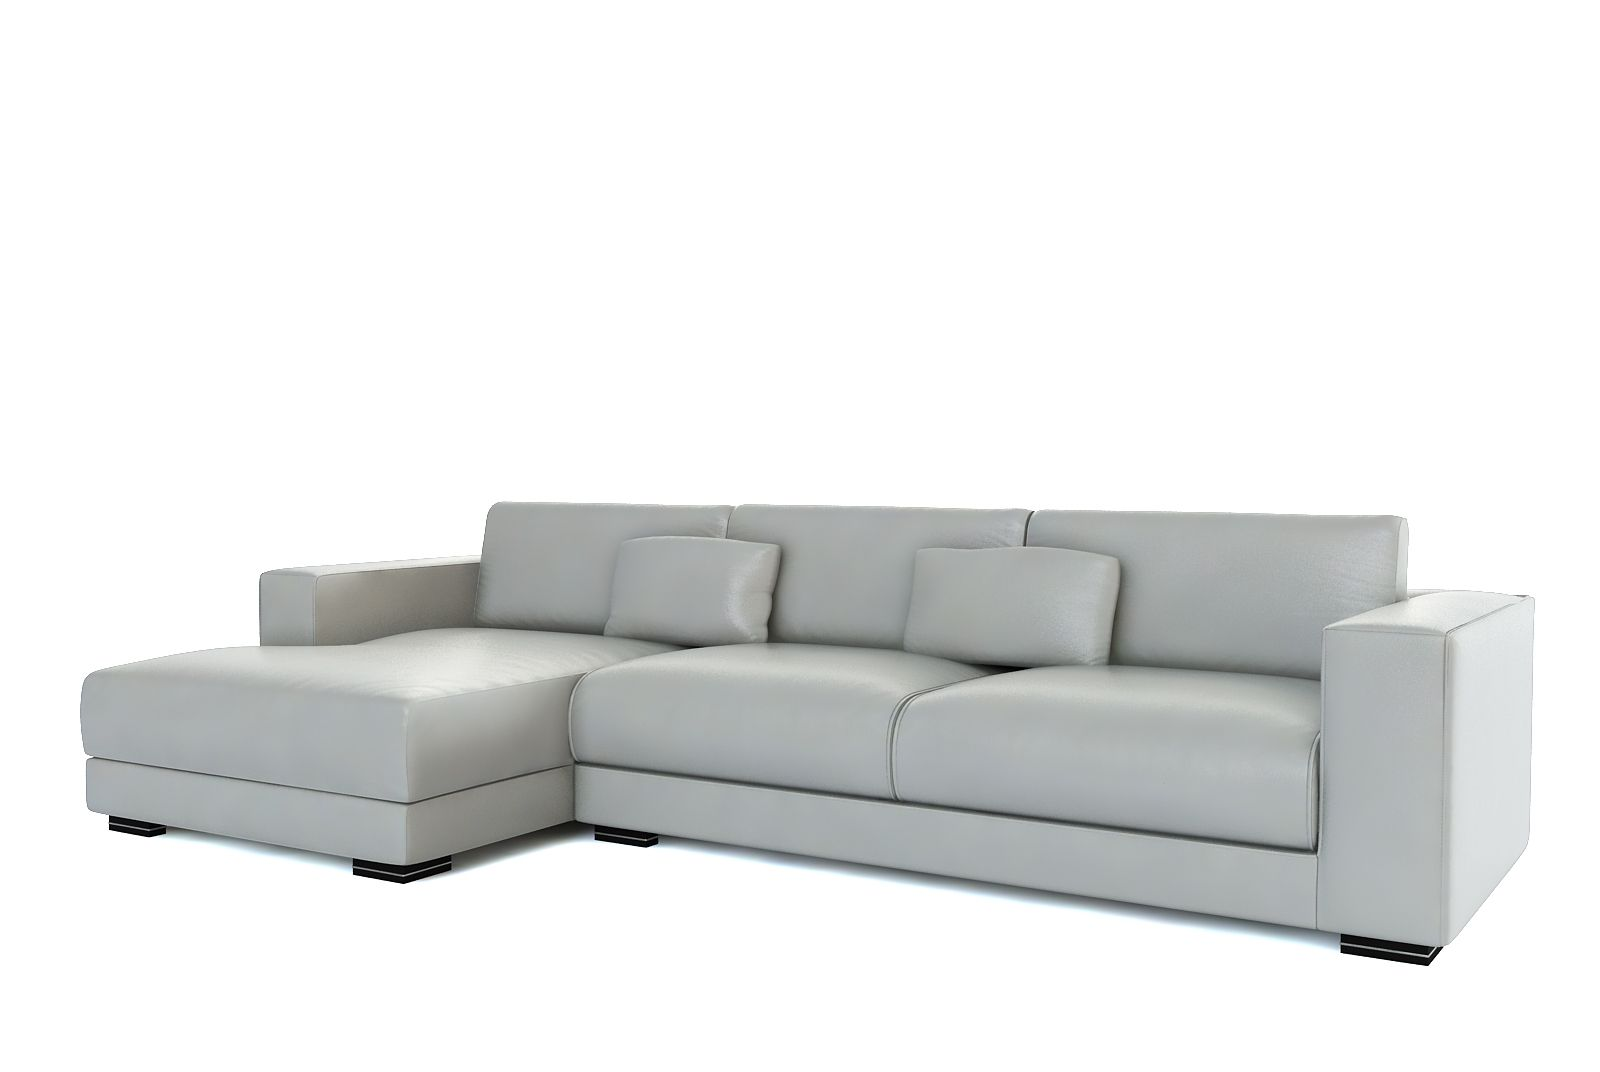 Grey Leather Sofa Light Gray Set